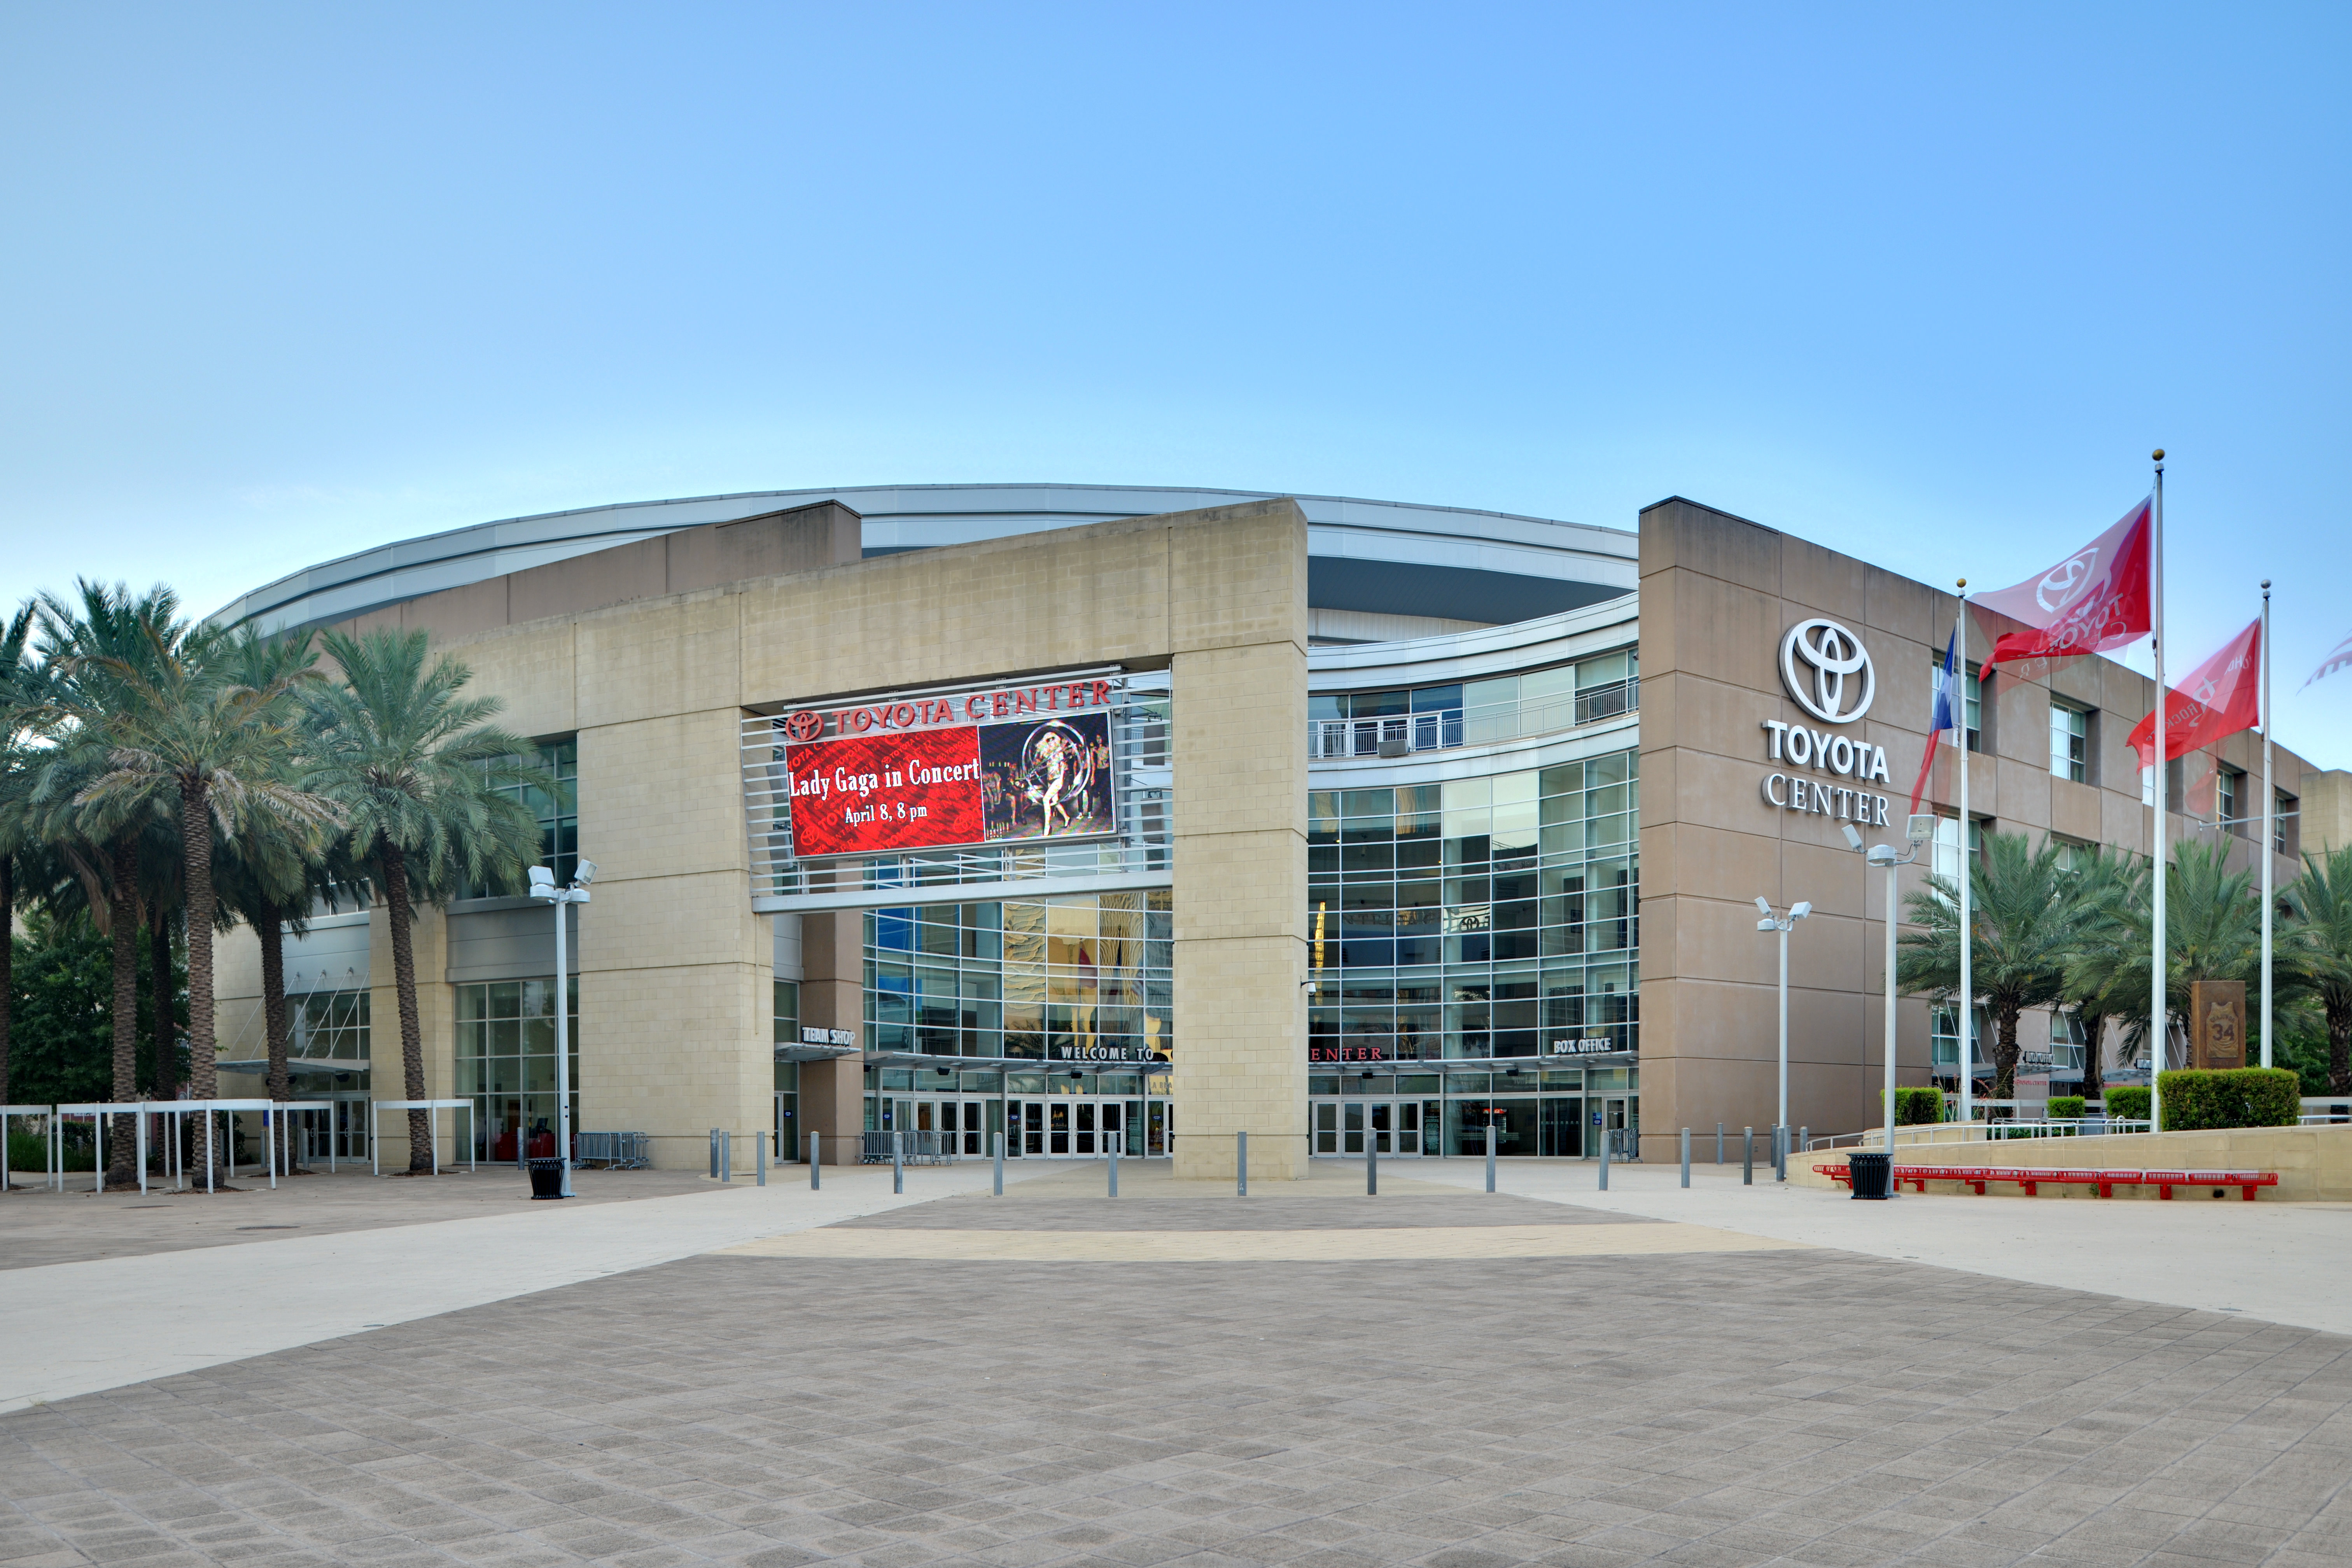 Amazing File:Toyota Center Entr